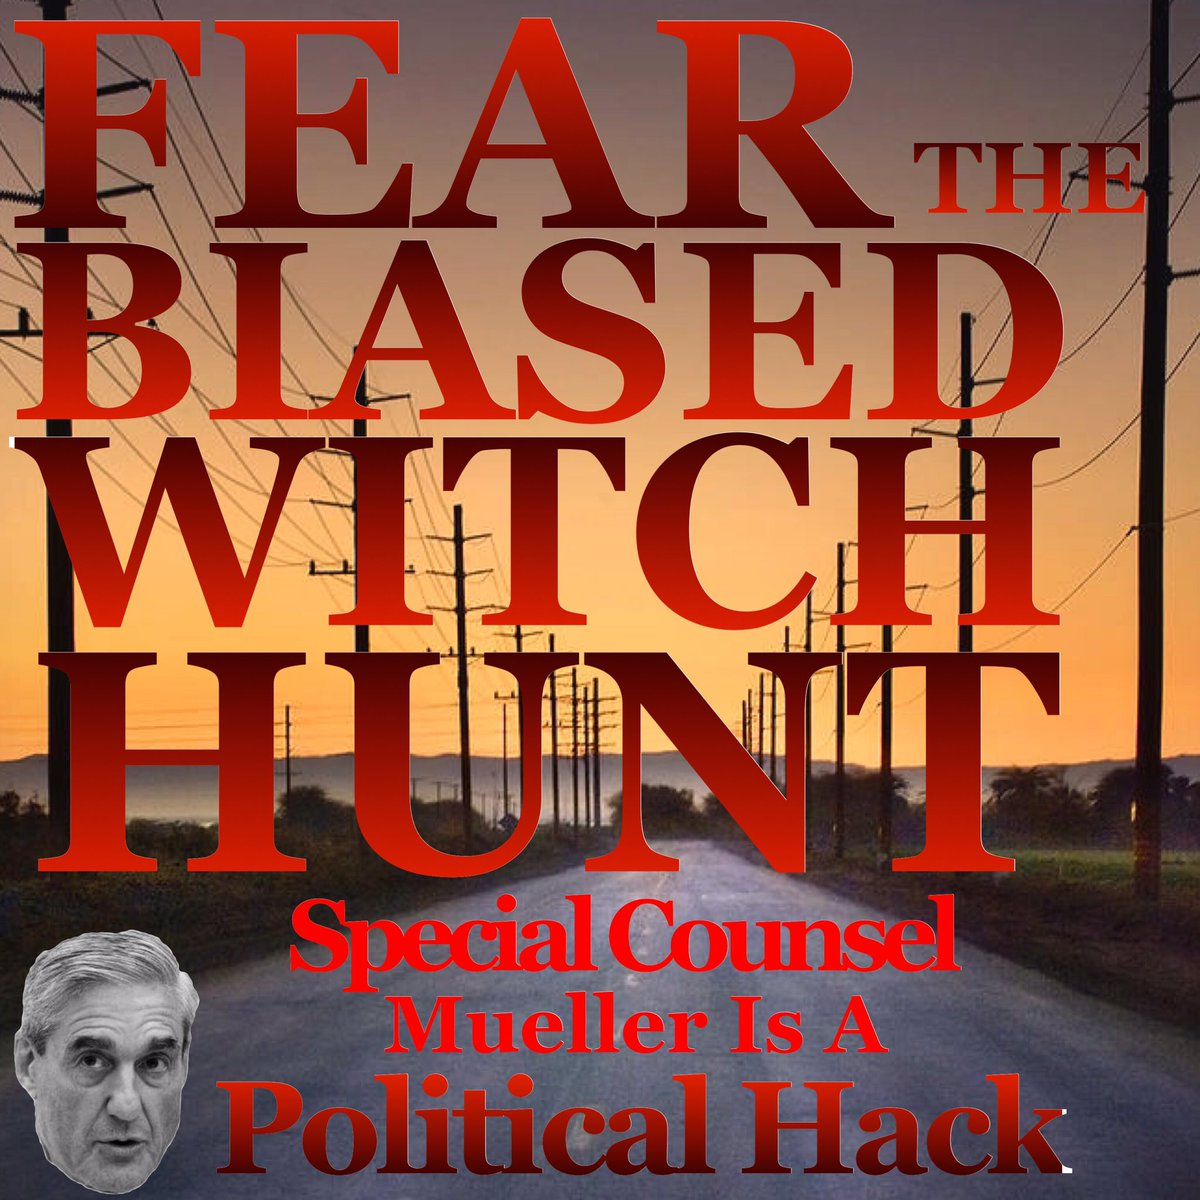 FEAR_THE_BIASED_WITCH_HUNT_MUELLER_98767